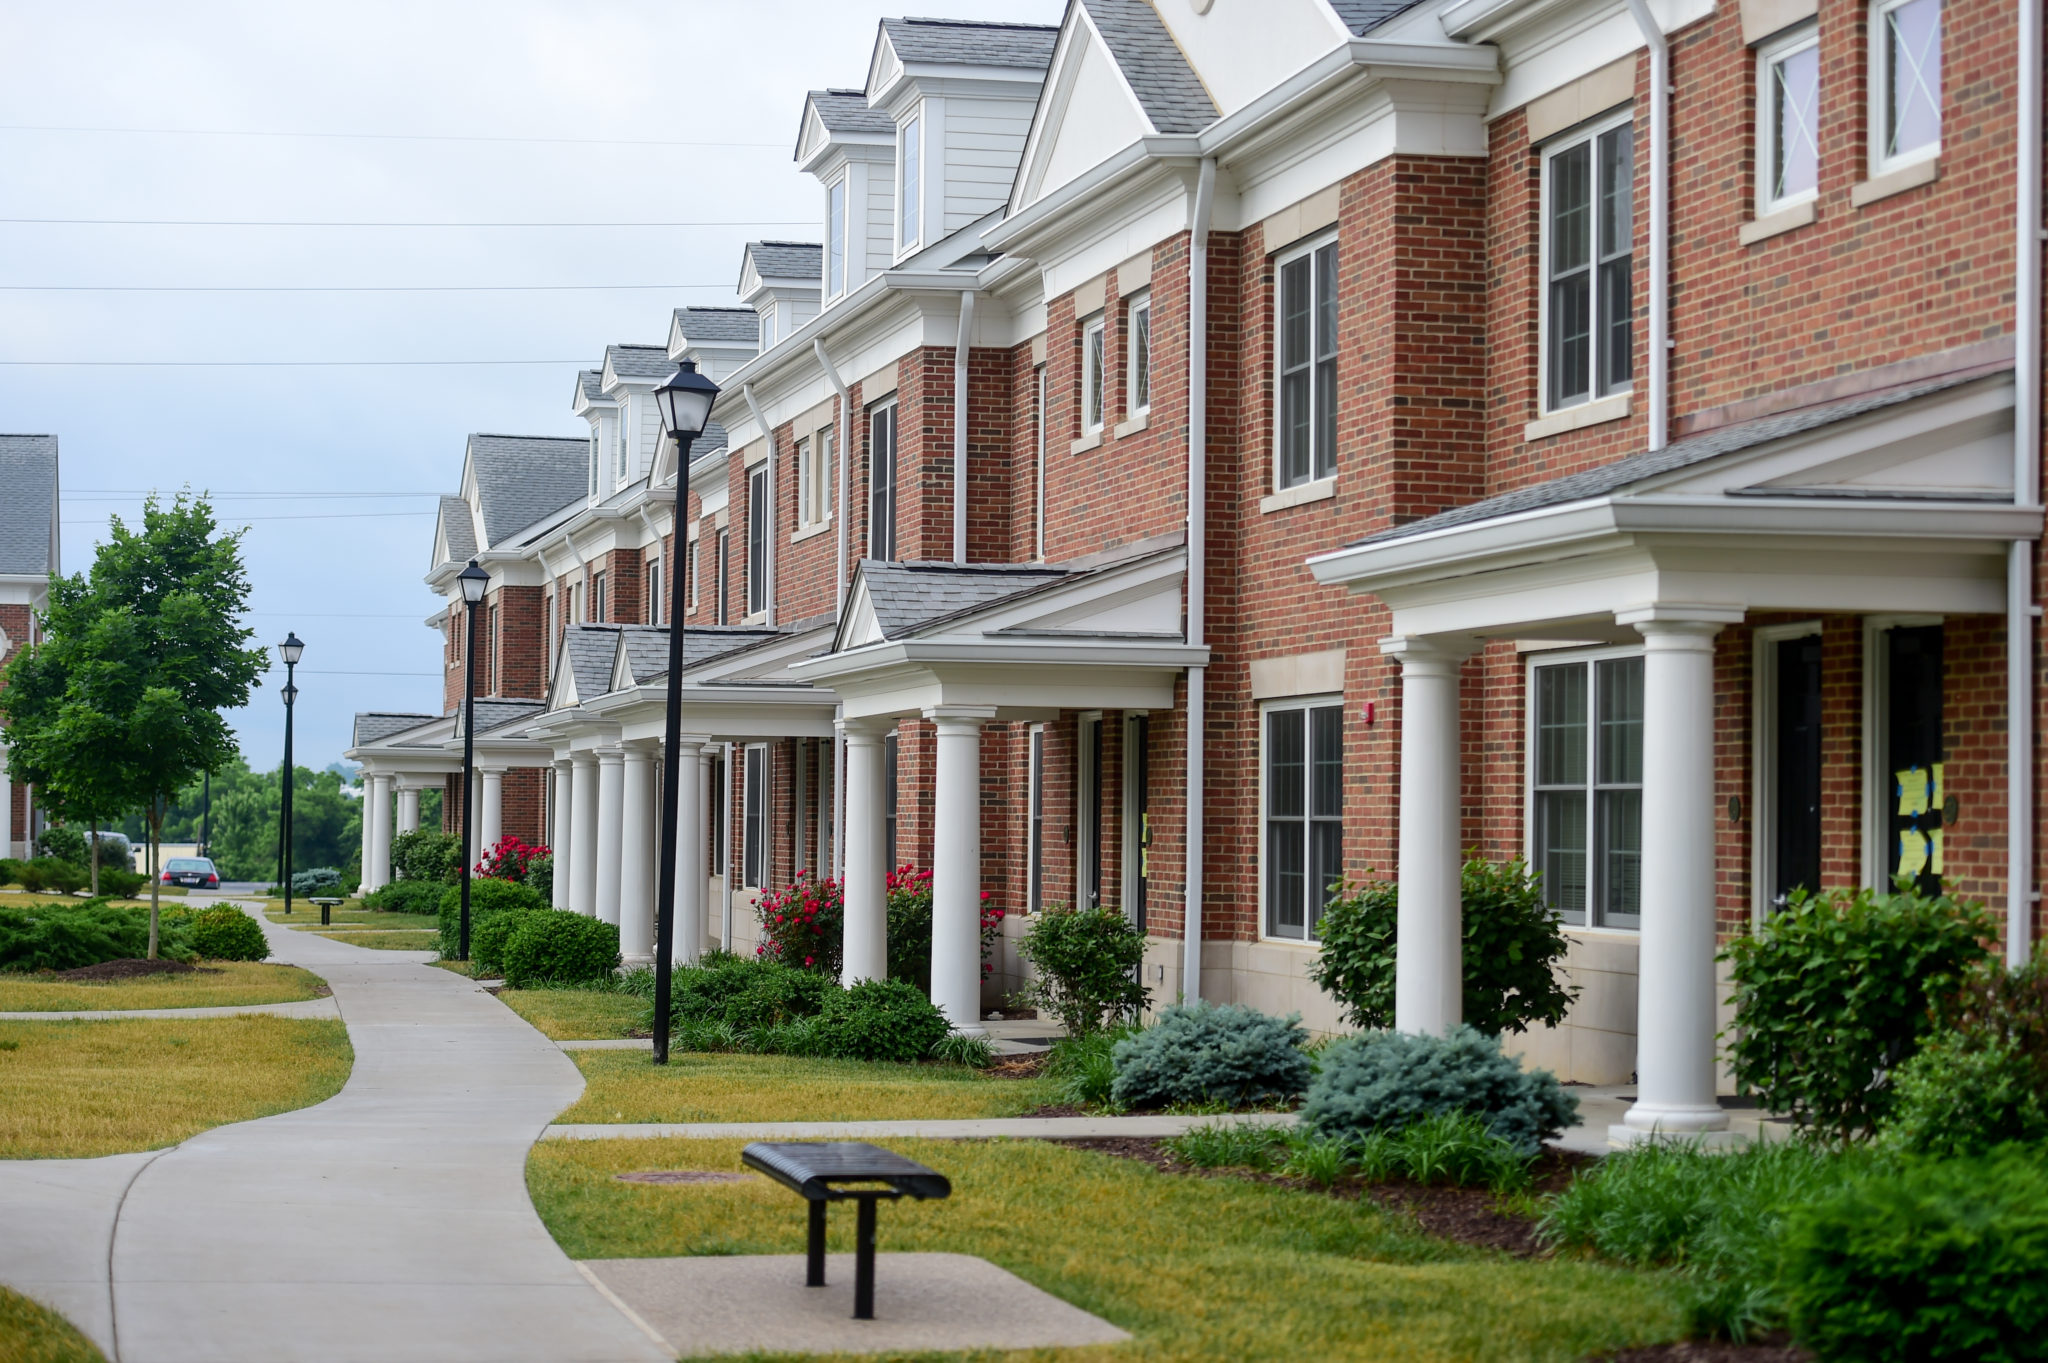 Brockman Commons housing